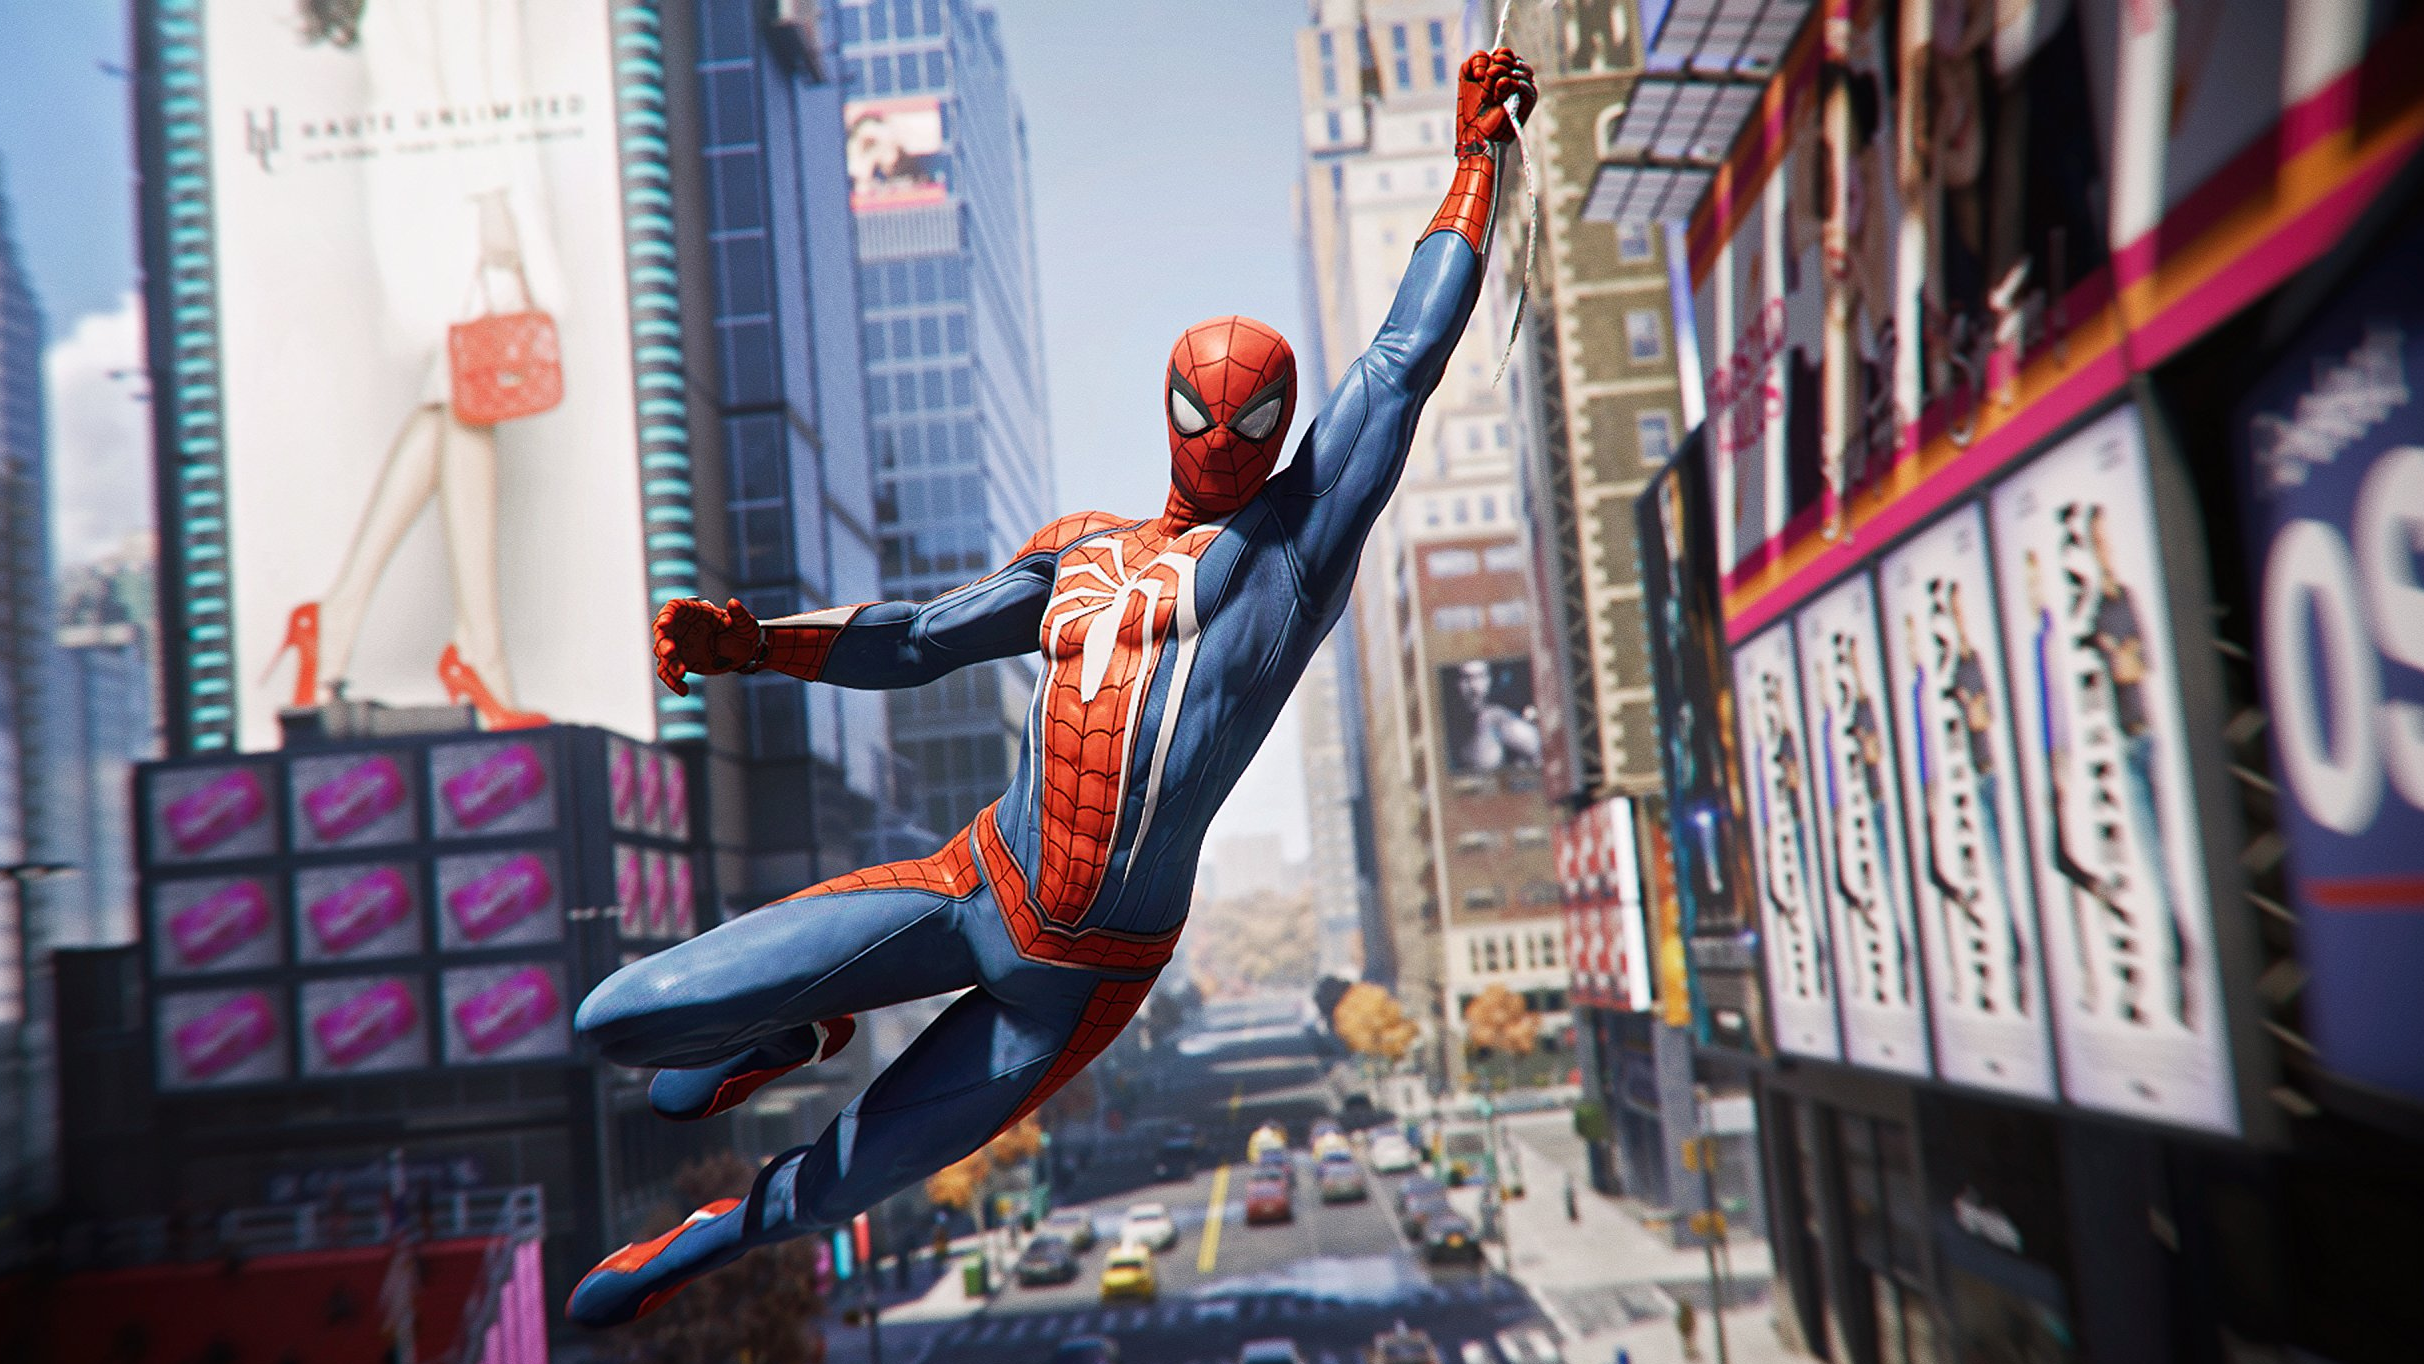 Spider-Man PS4 Players Are Still Holding Out Hope For The 'Sam Raimi Suit'